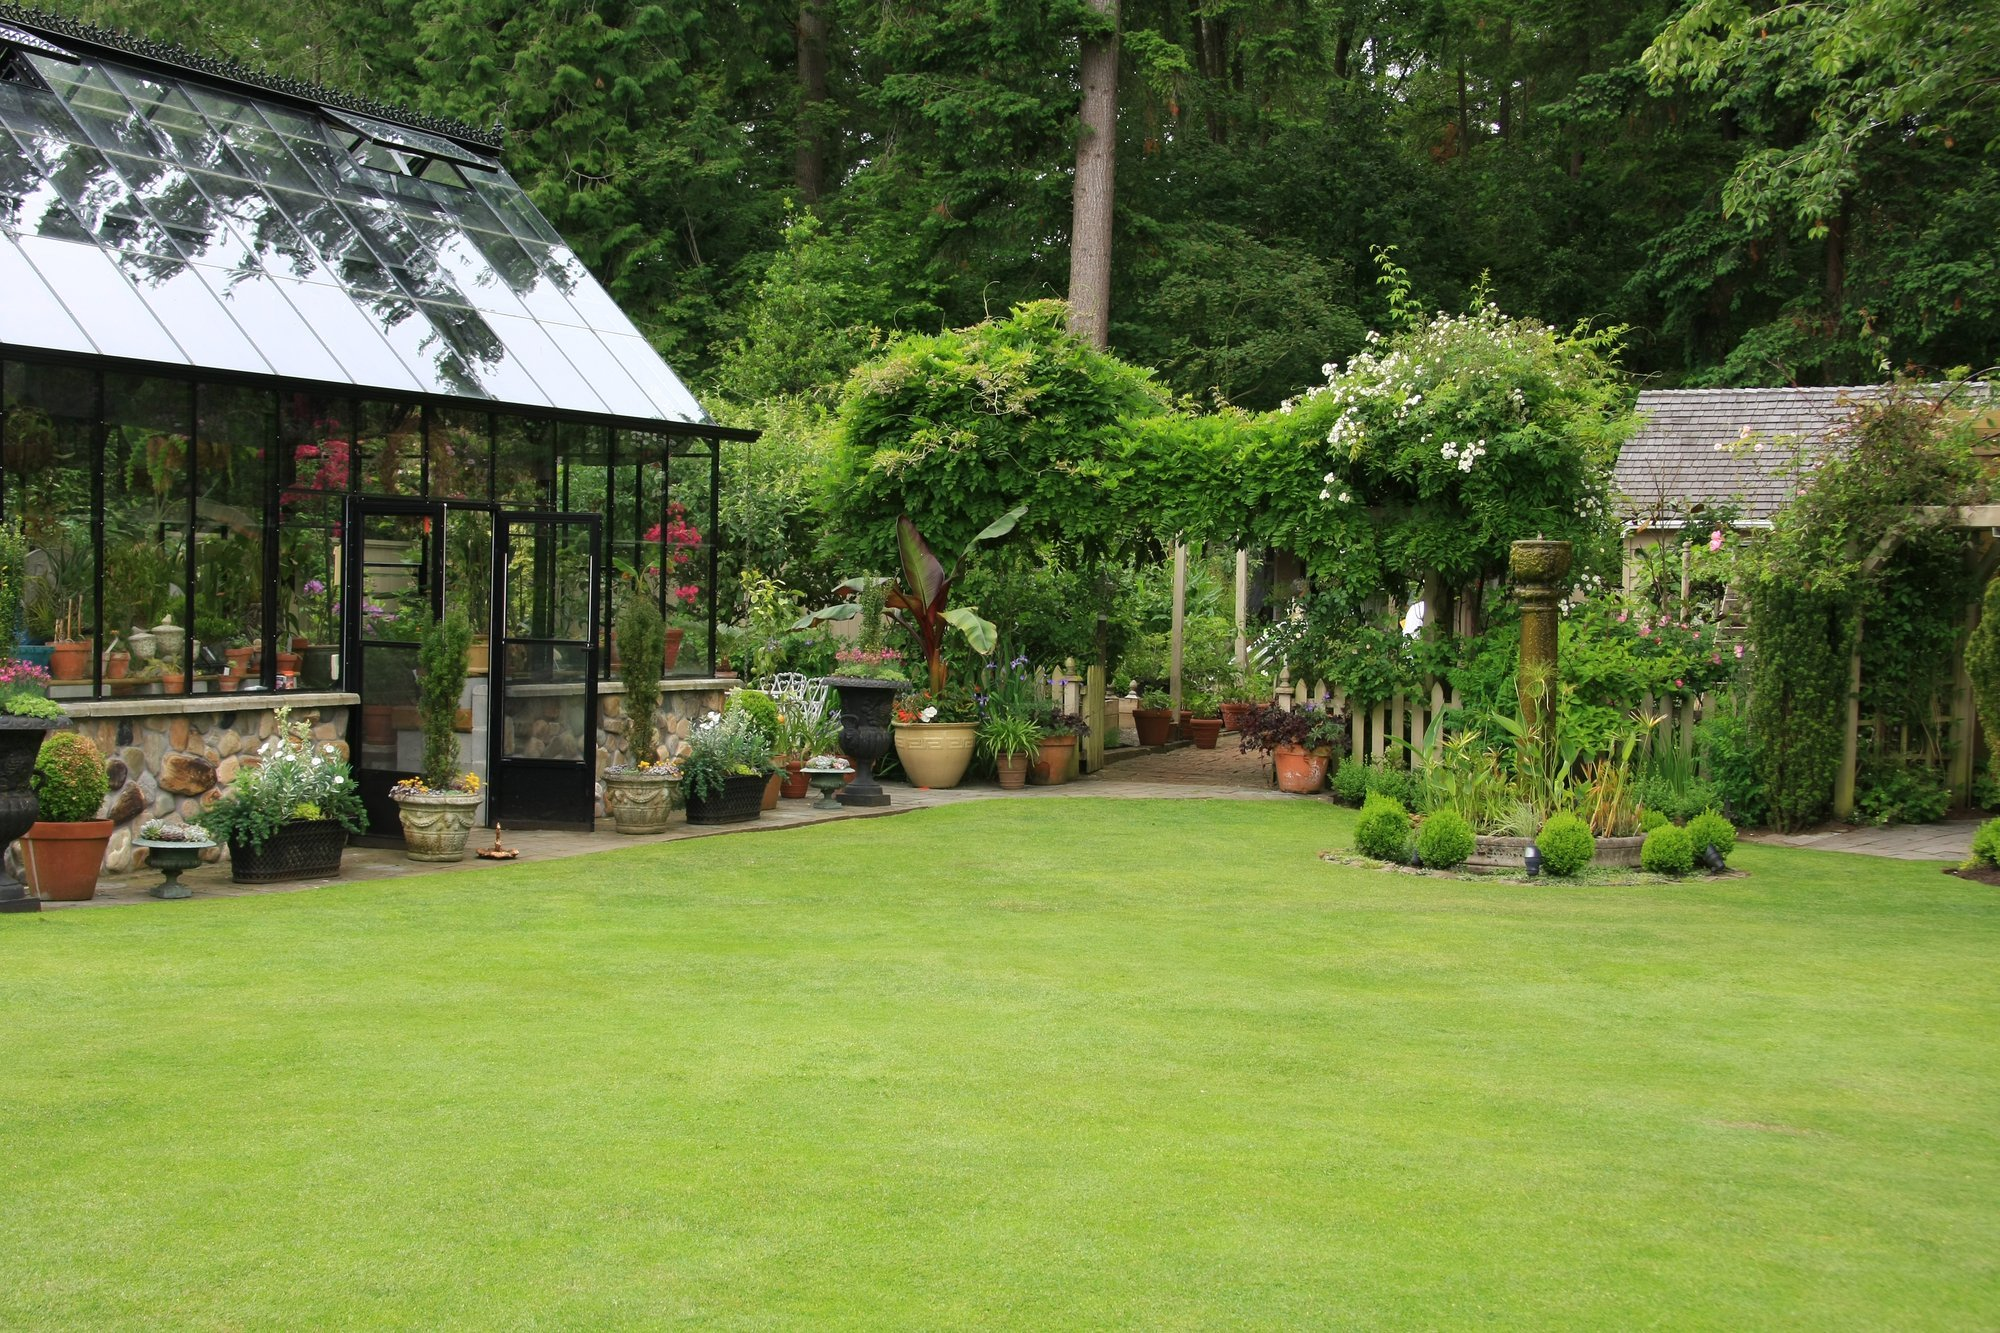 5 Reasons Why You Should Have A Dwarf Wall Greenhouse In Your Garden